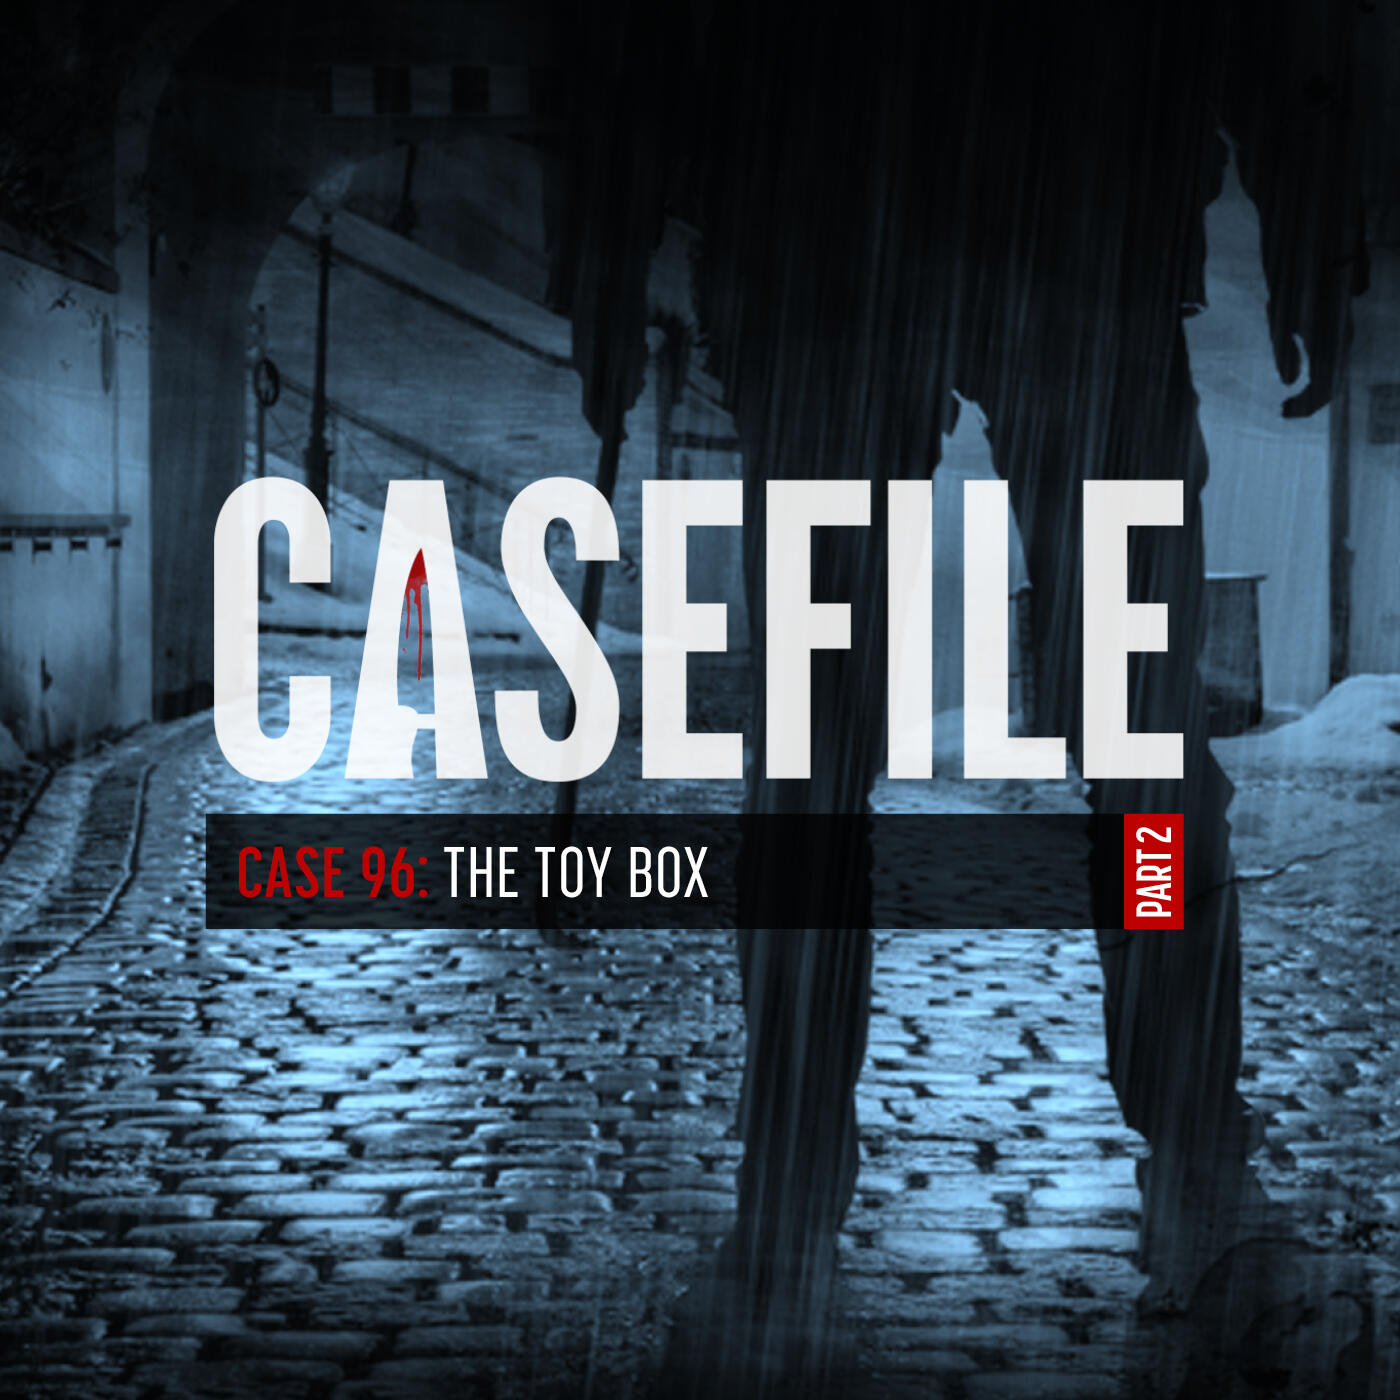 Case 96: The Toy Box (Part 2)